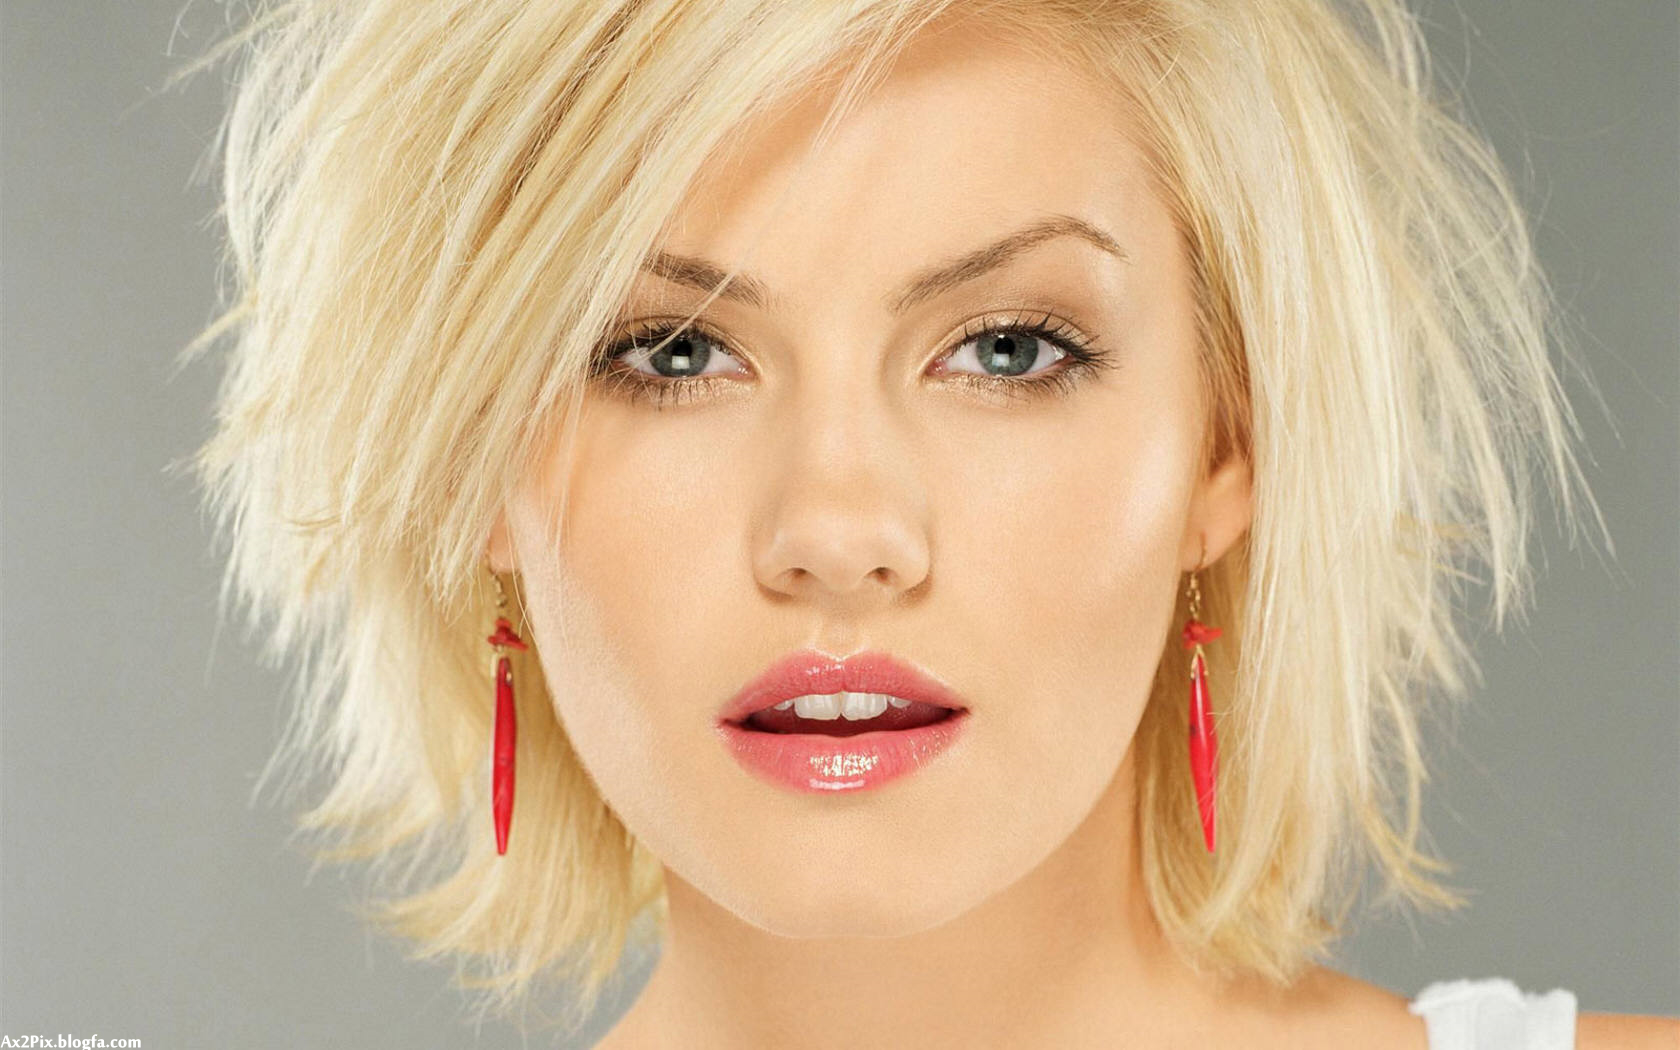 http://ax2pix.persiangig.com/image/Female%20celebrities/Elisha.Cuthbert/wallpaper-129935.jpg